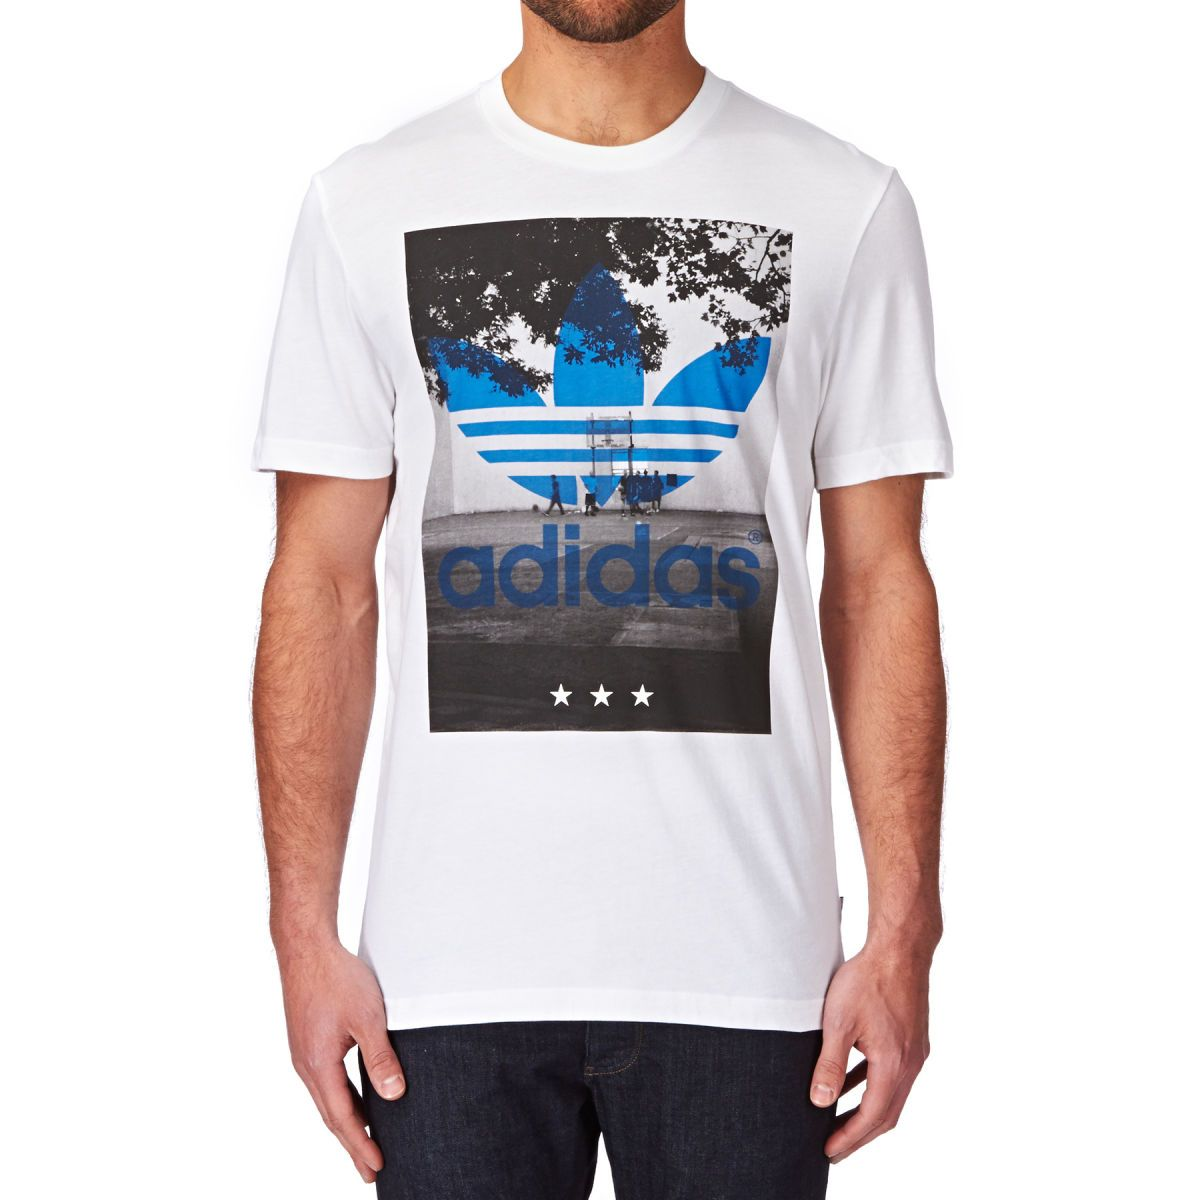 adidas-originals-t-shirts-adidas-originals-court-trefoil-